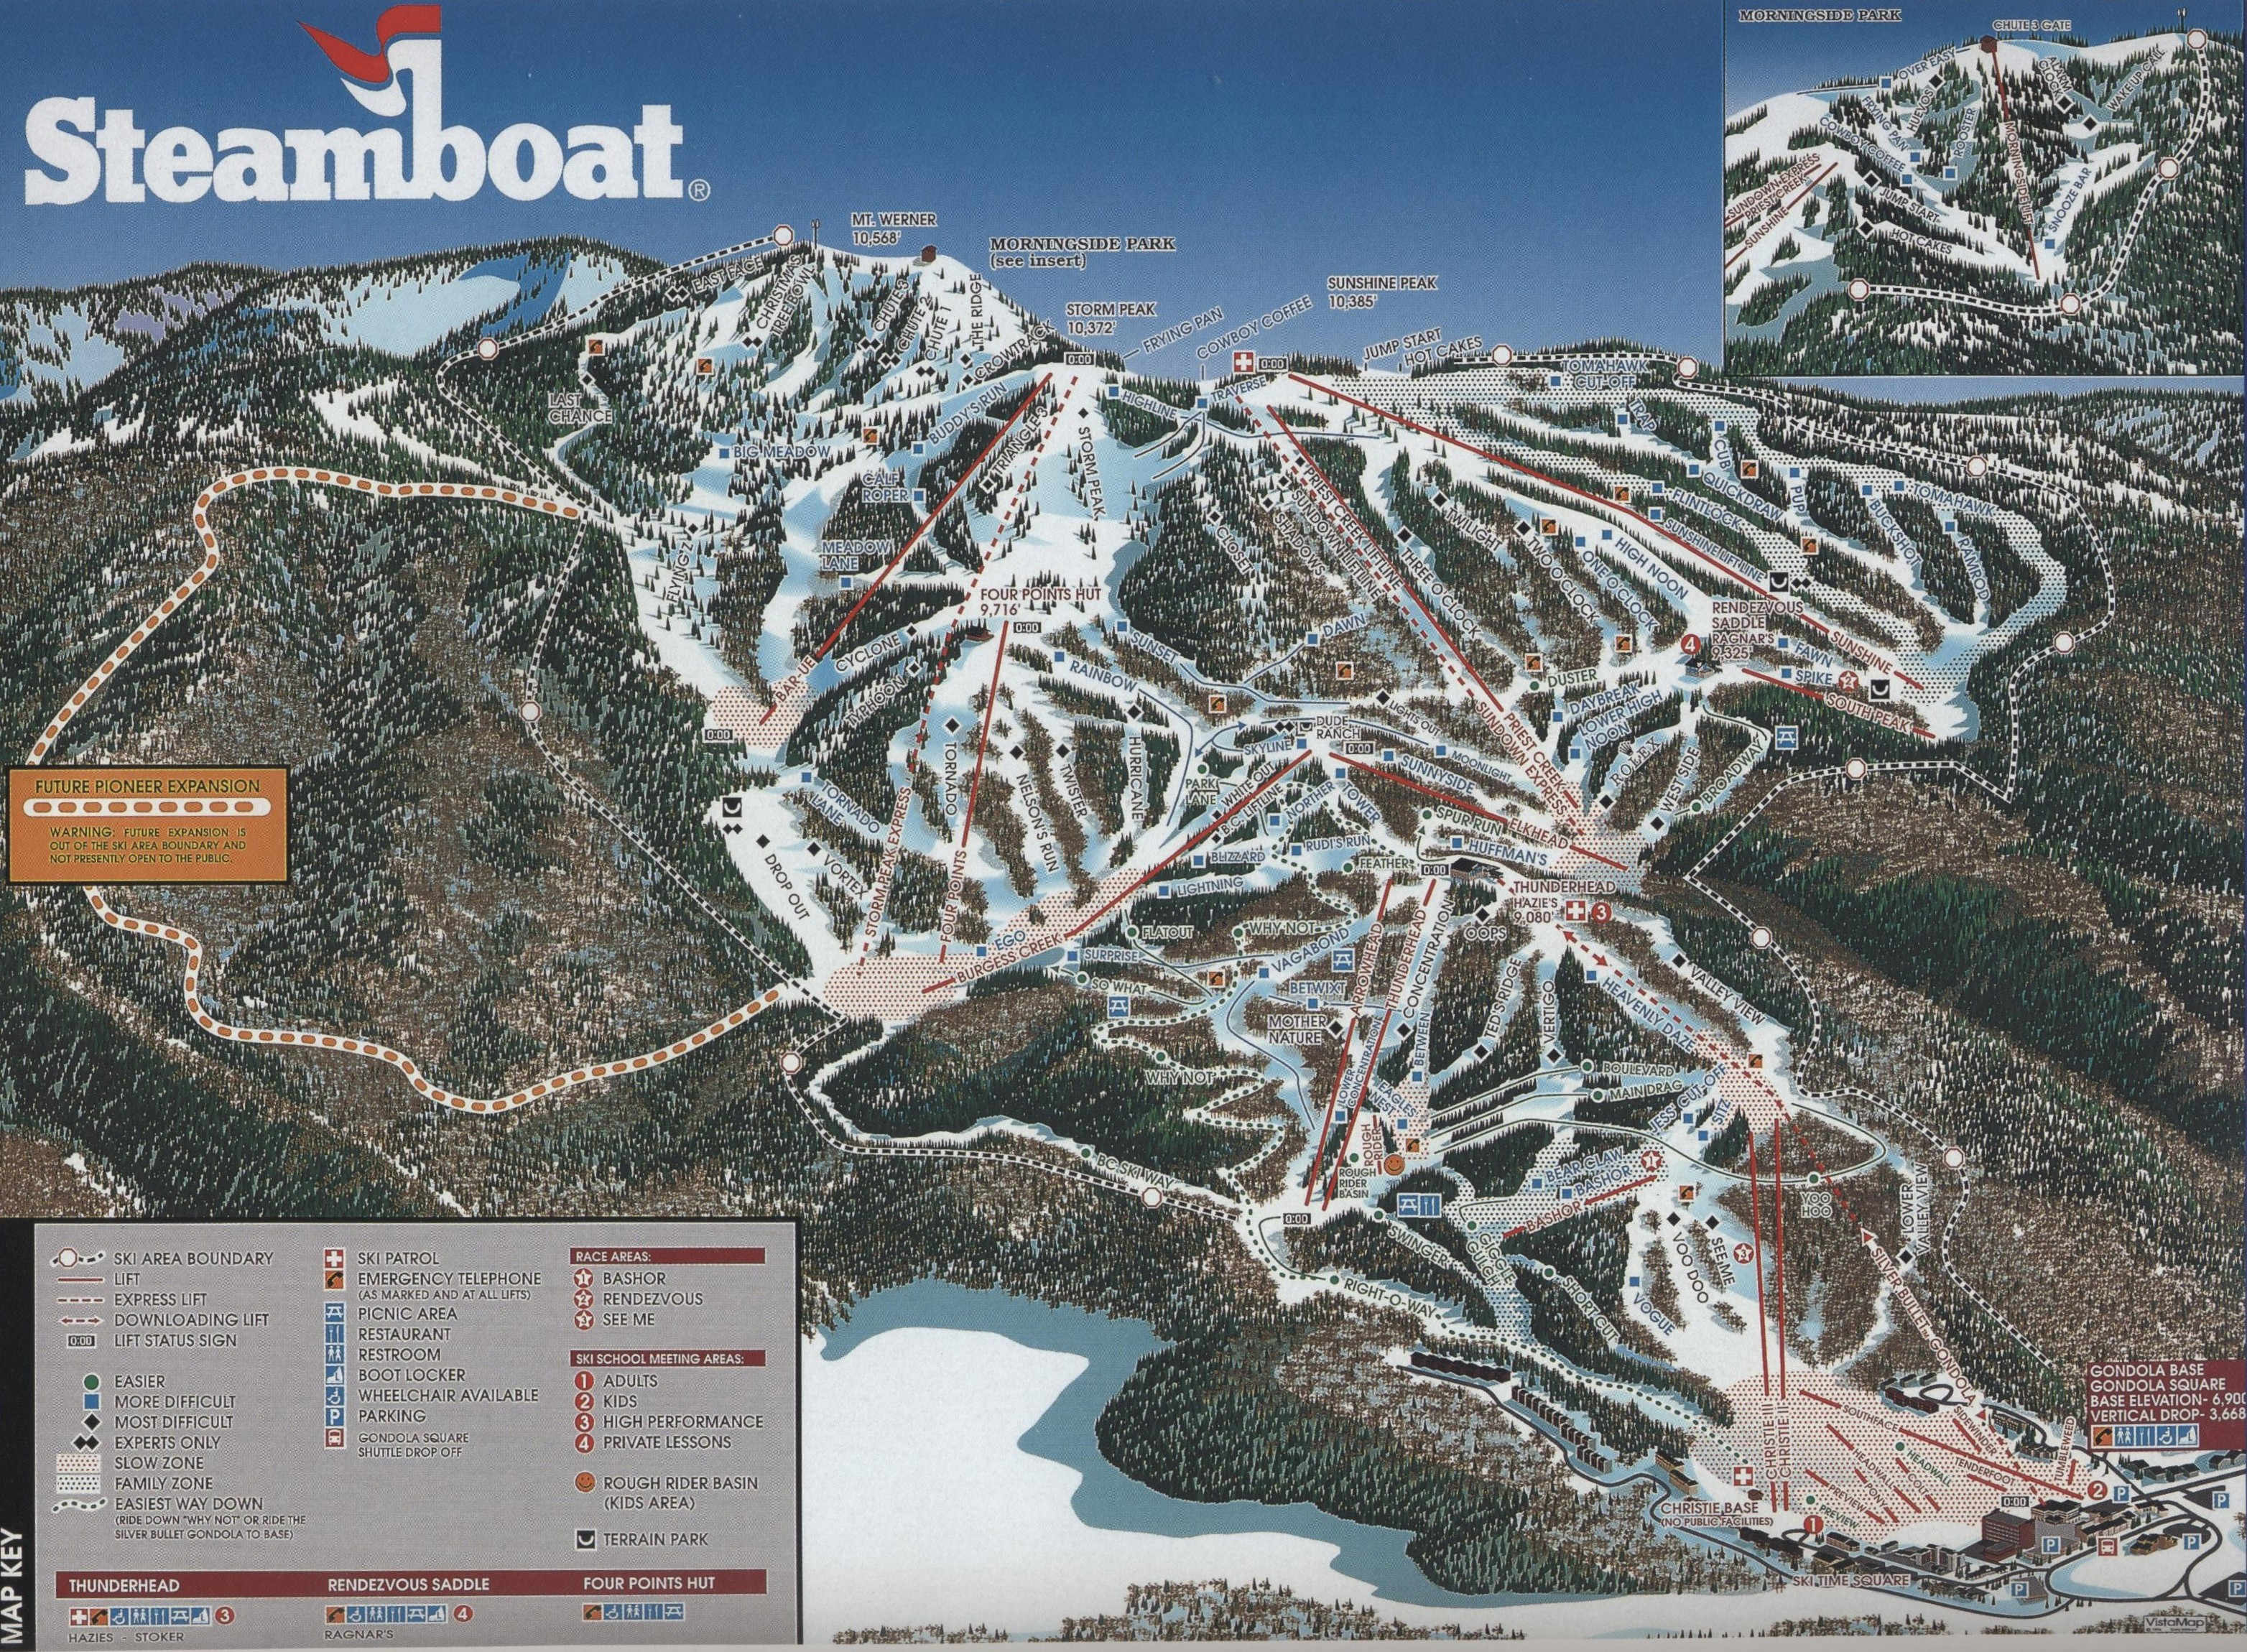 Steamboat Ski Resort - SkiMap.org